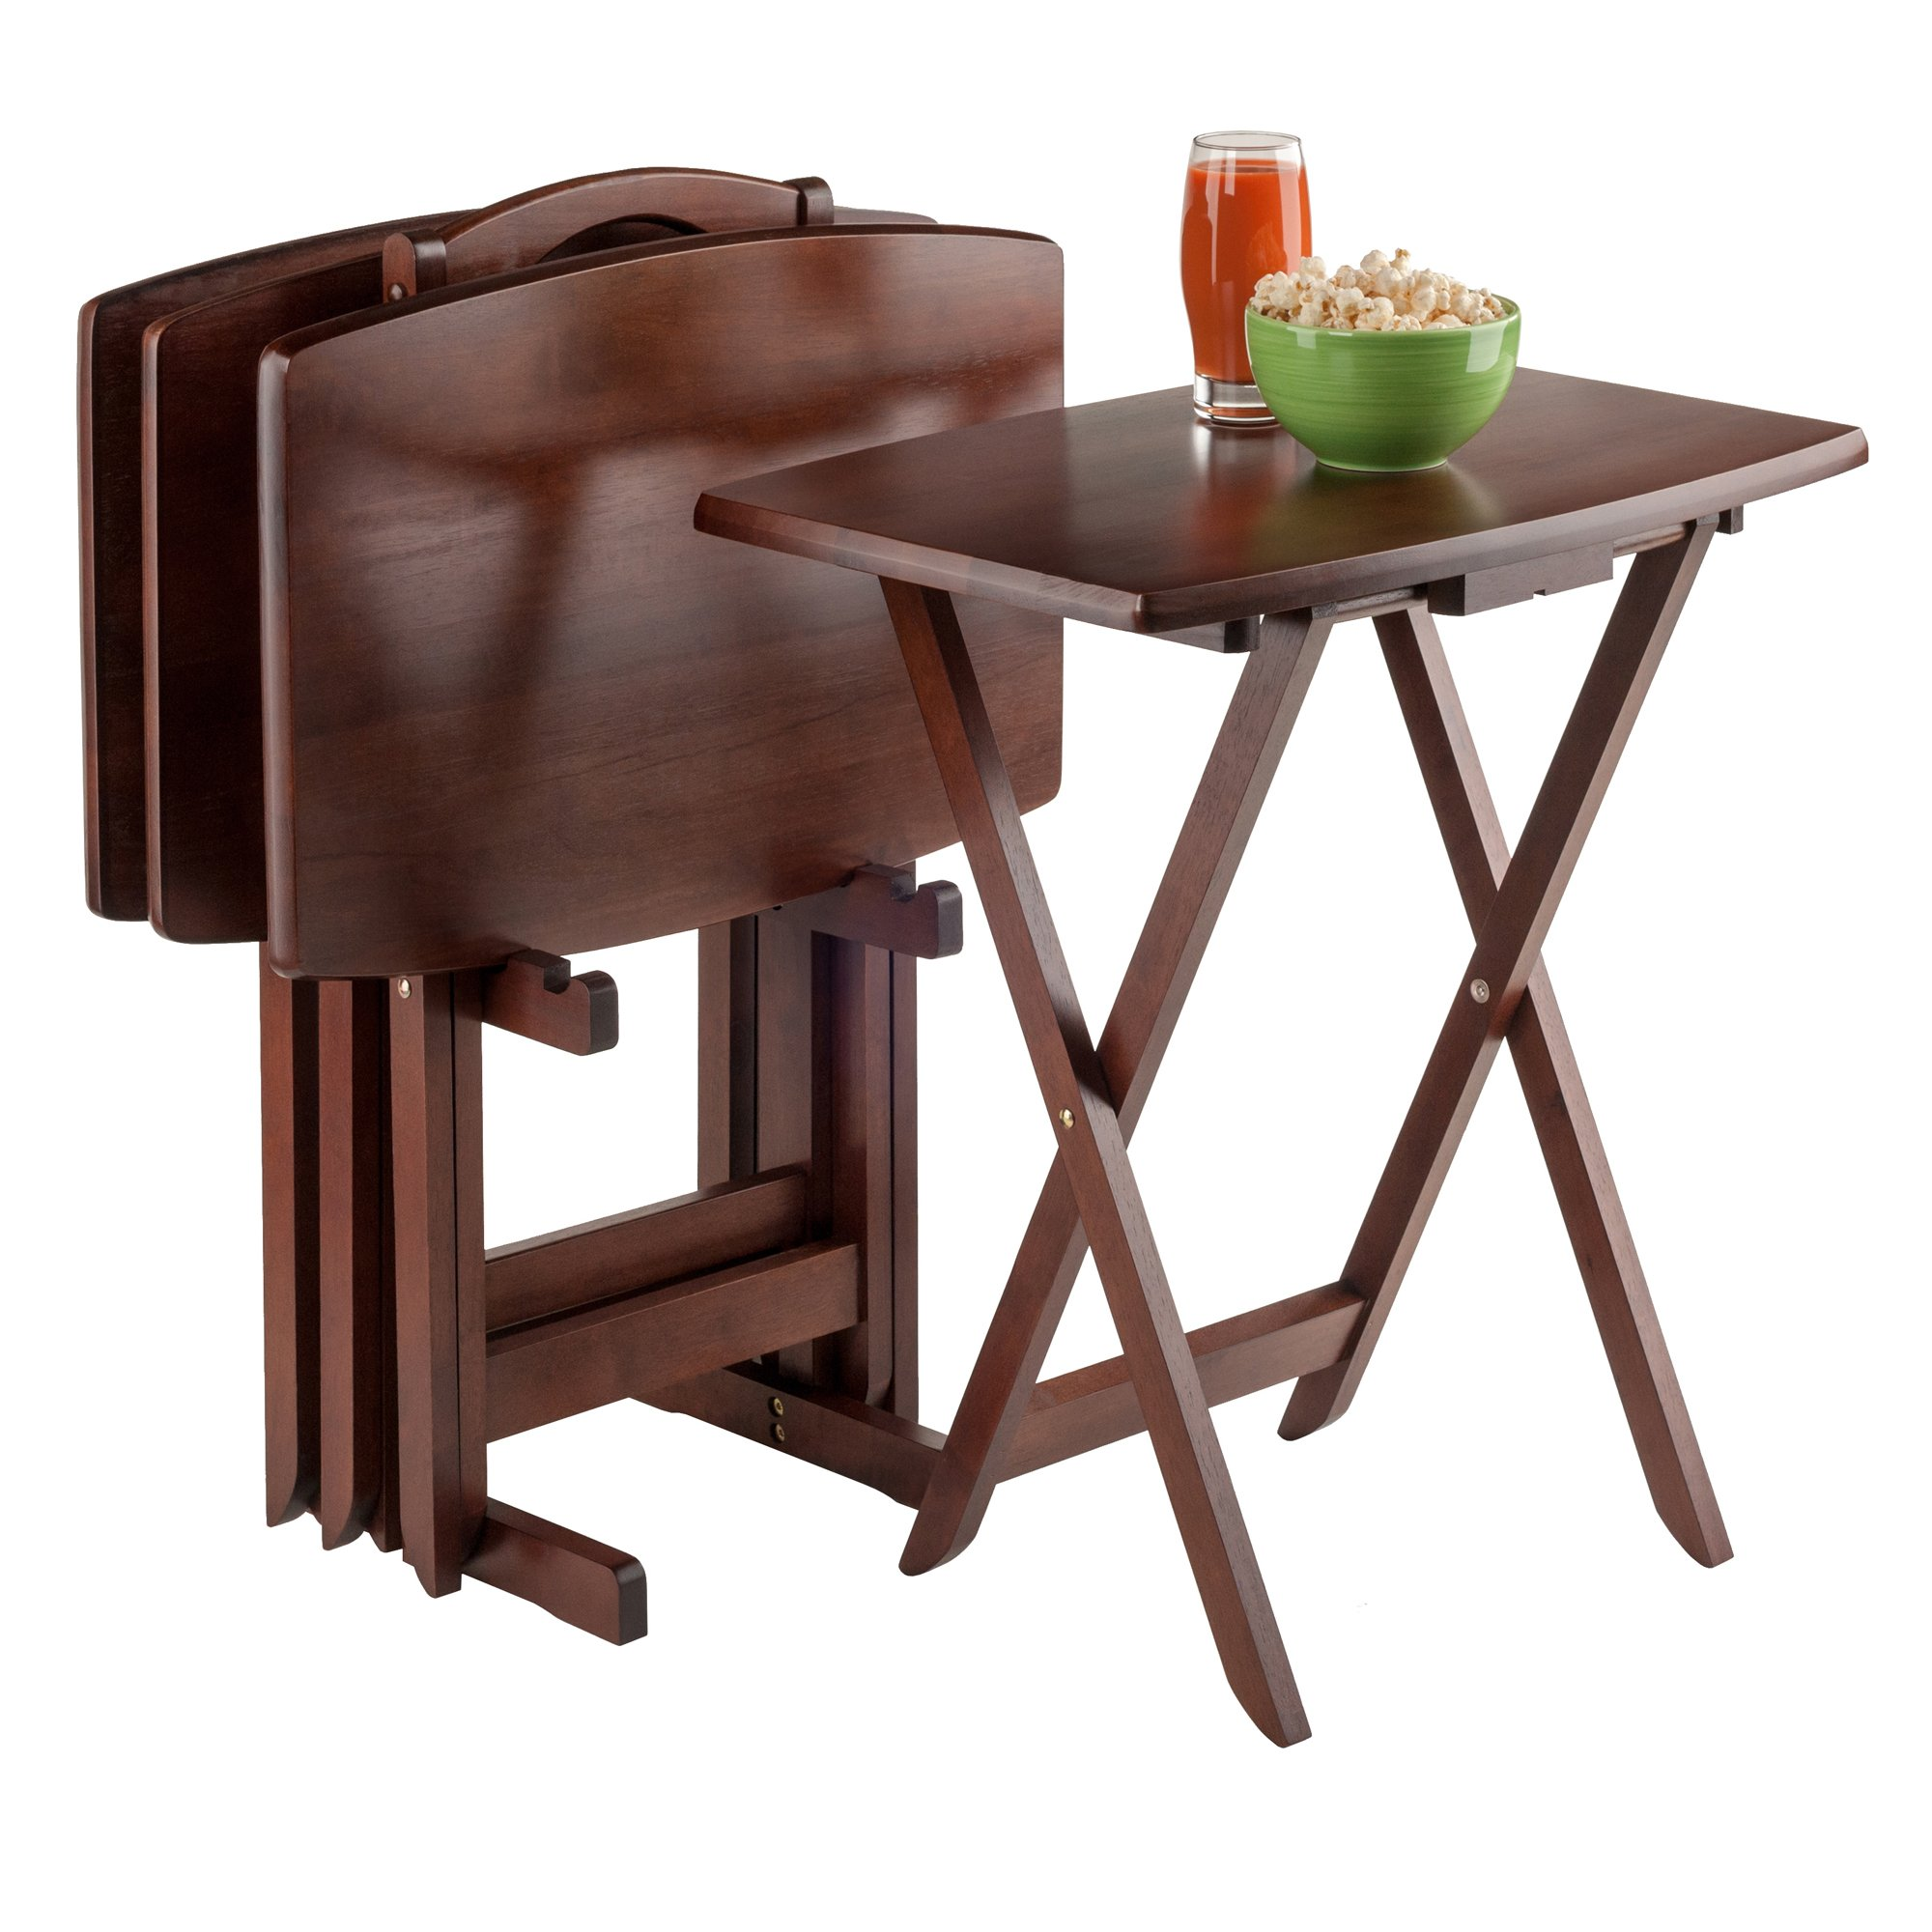 Winsome Oversize Snack Table Set, Walnut by Winsome Wood (Image #3)